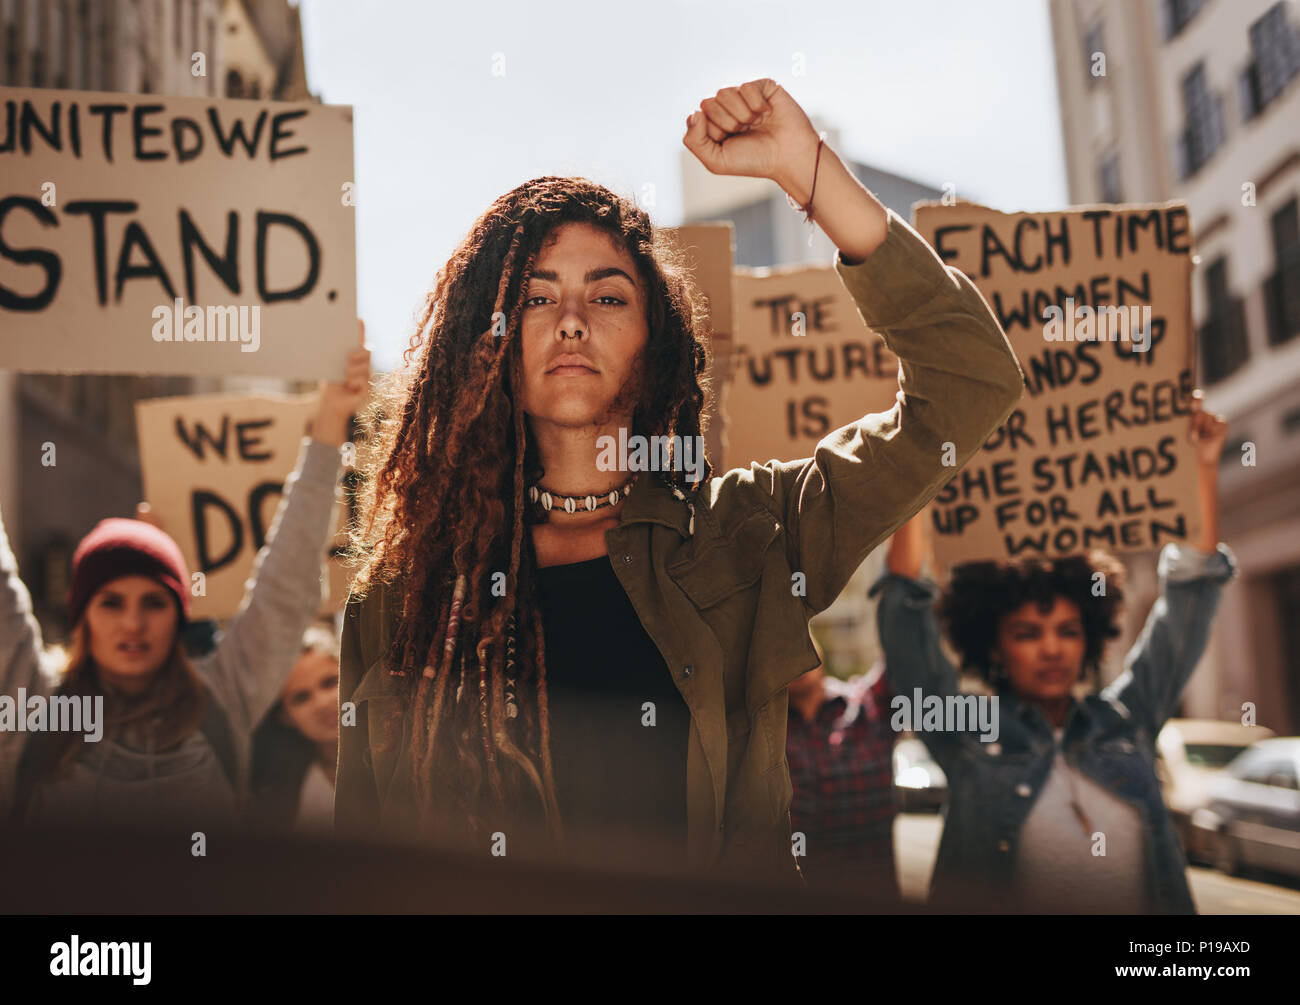 Woman leading a group of demonstrators on road. Group of female protesting for equality and women empowerment. - Stock Image